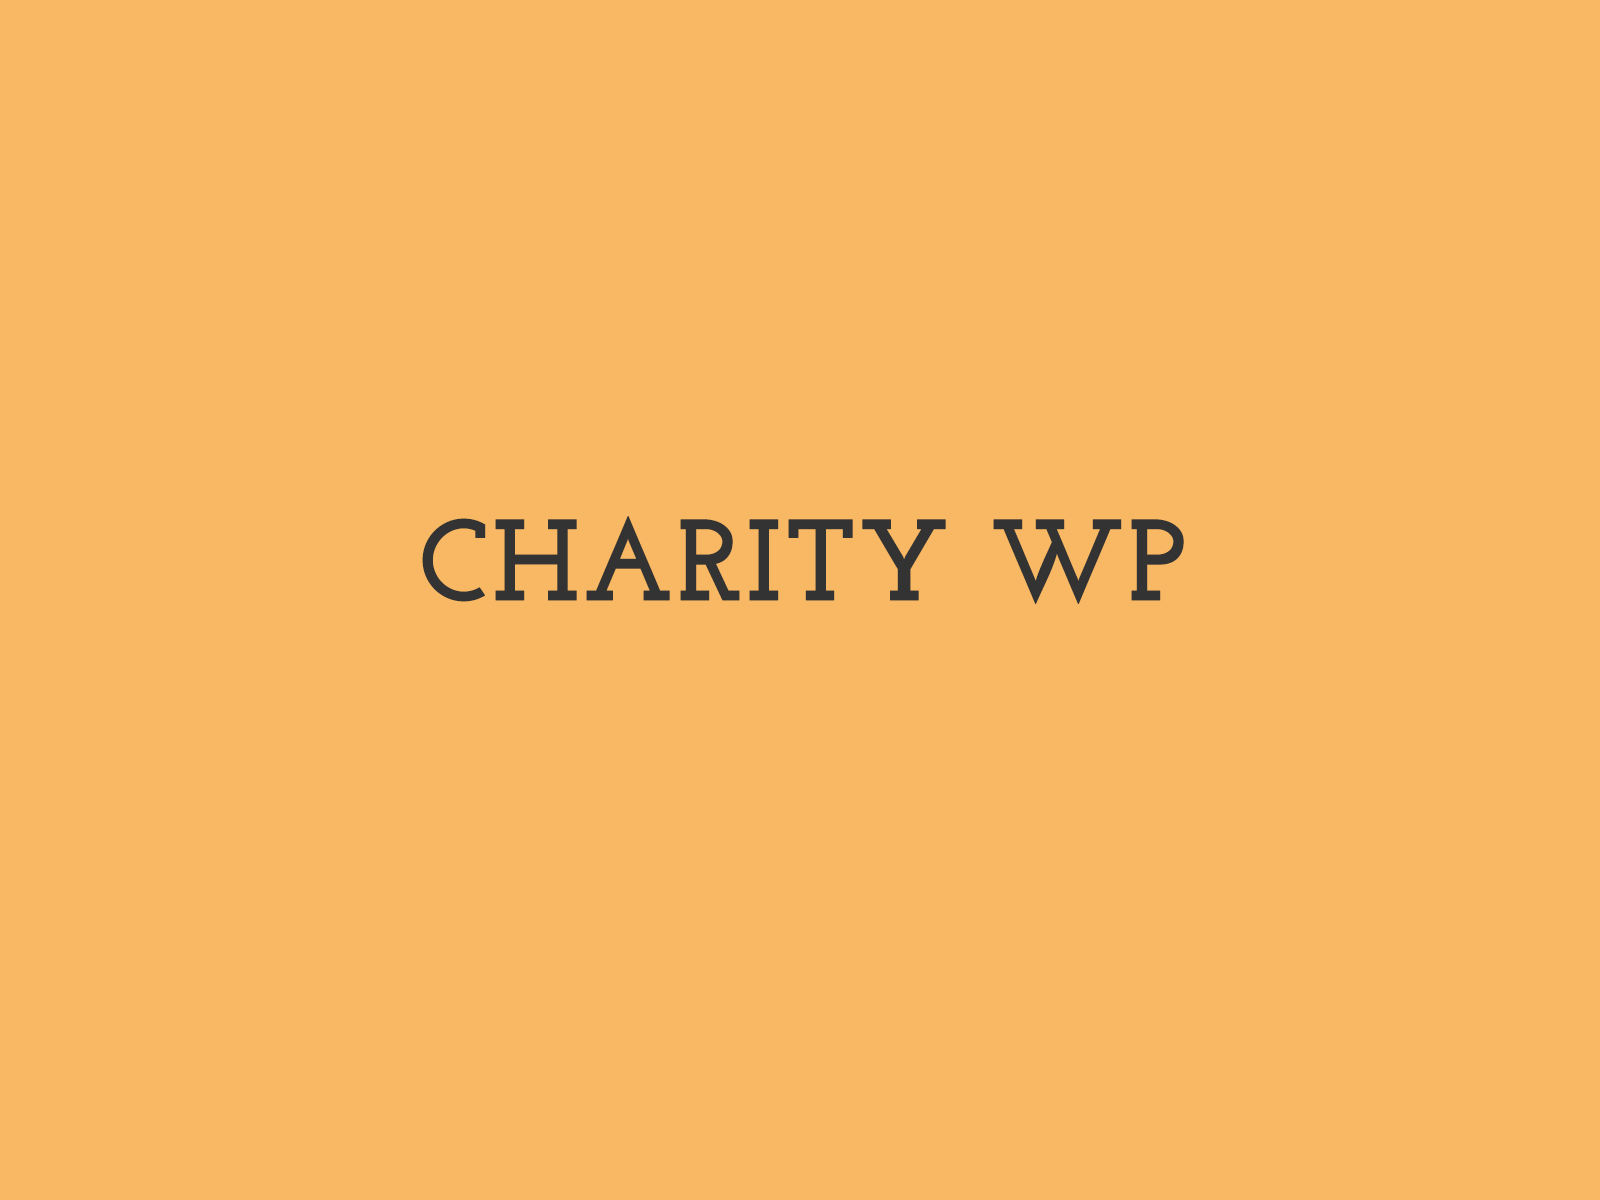 Agile working tips for charities